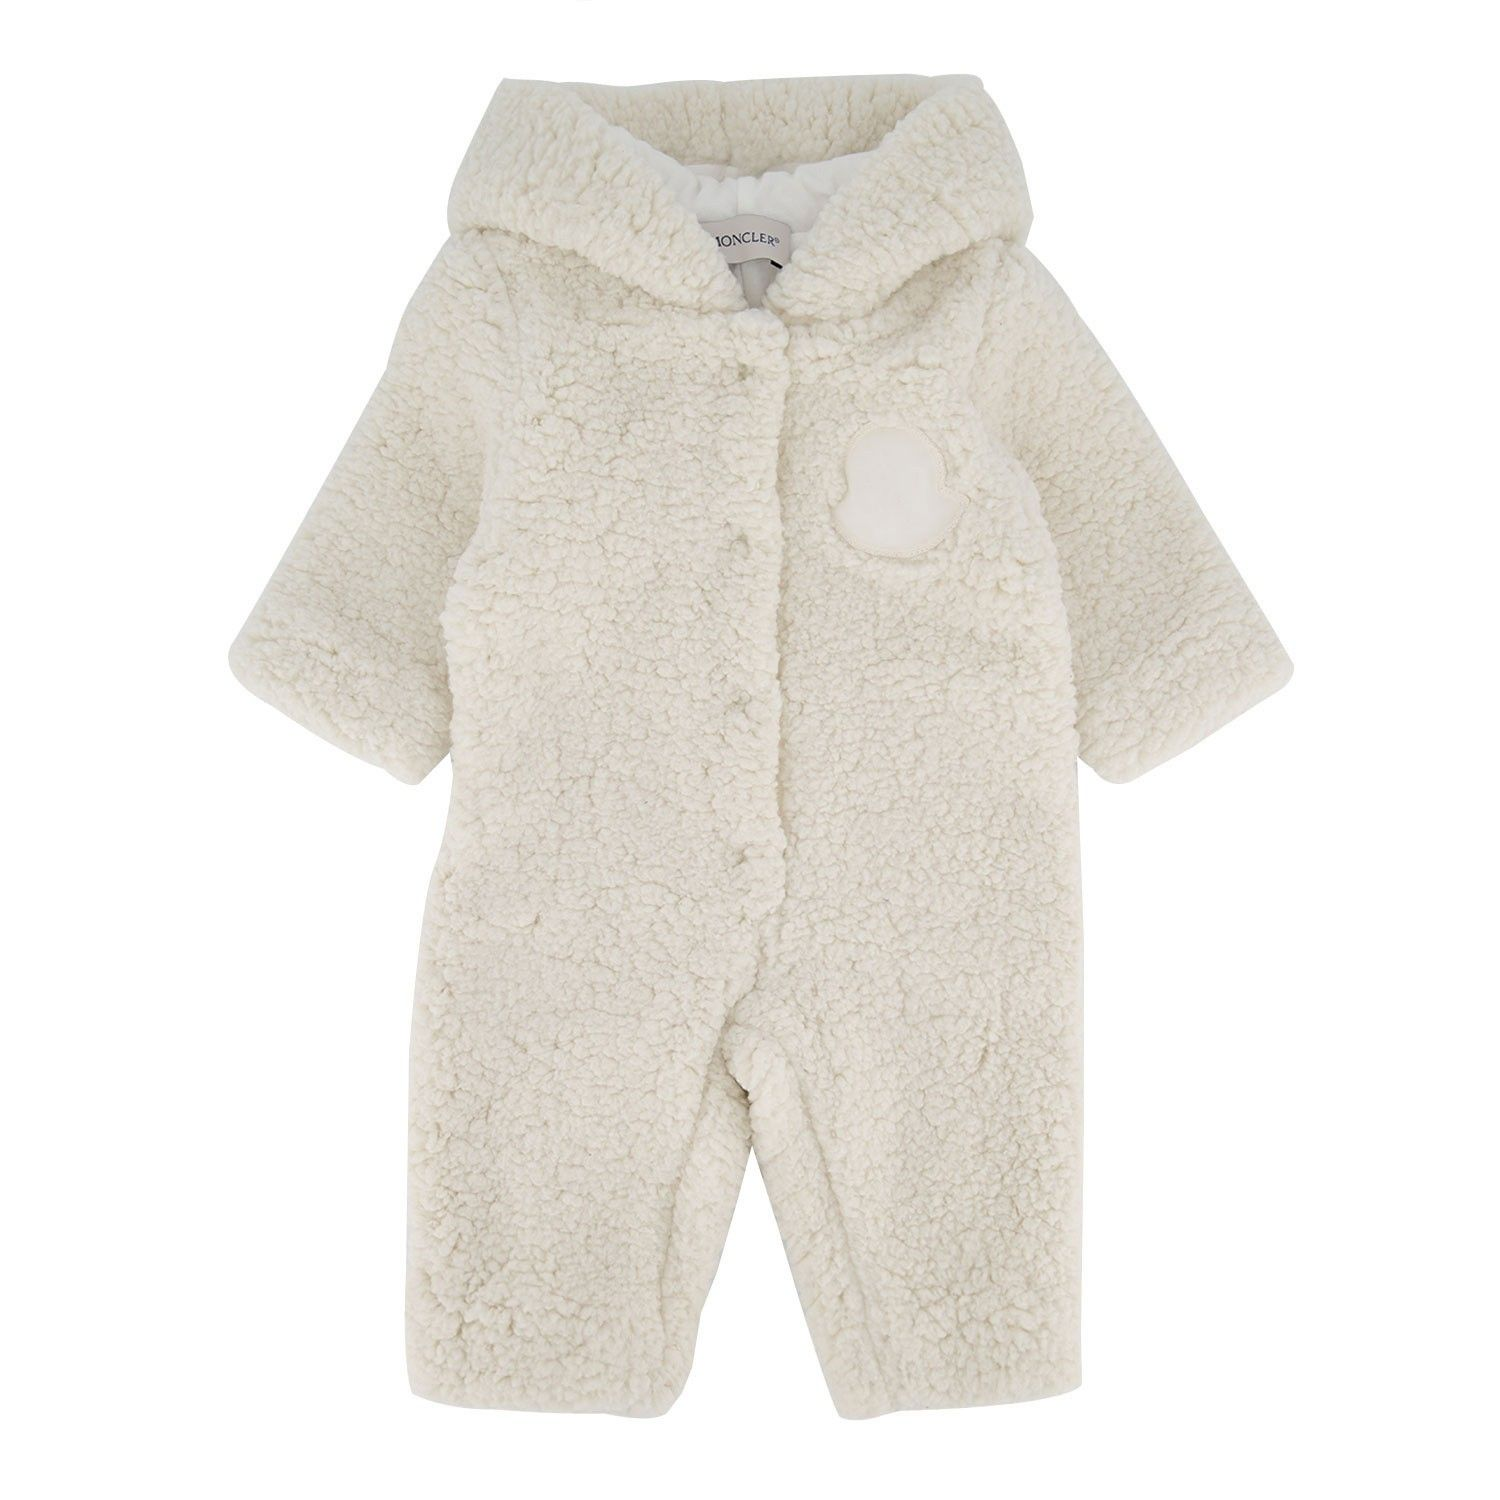 Picture of Moncler 8L71810 baby playsuit off white